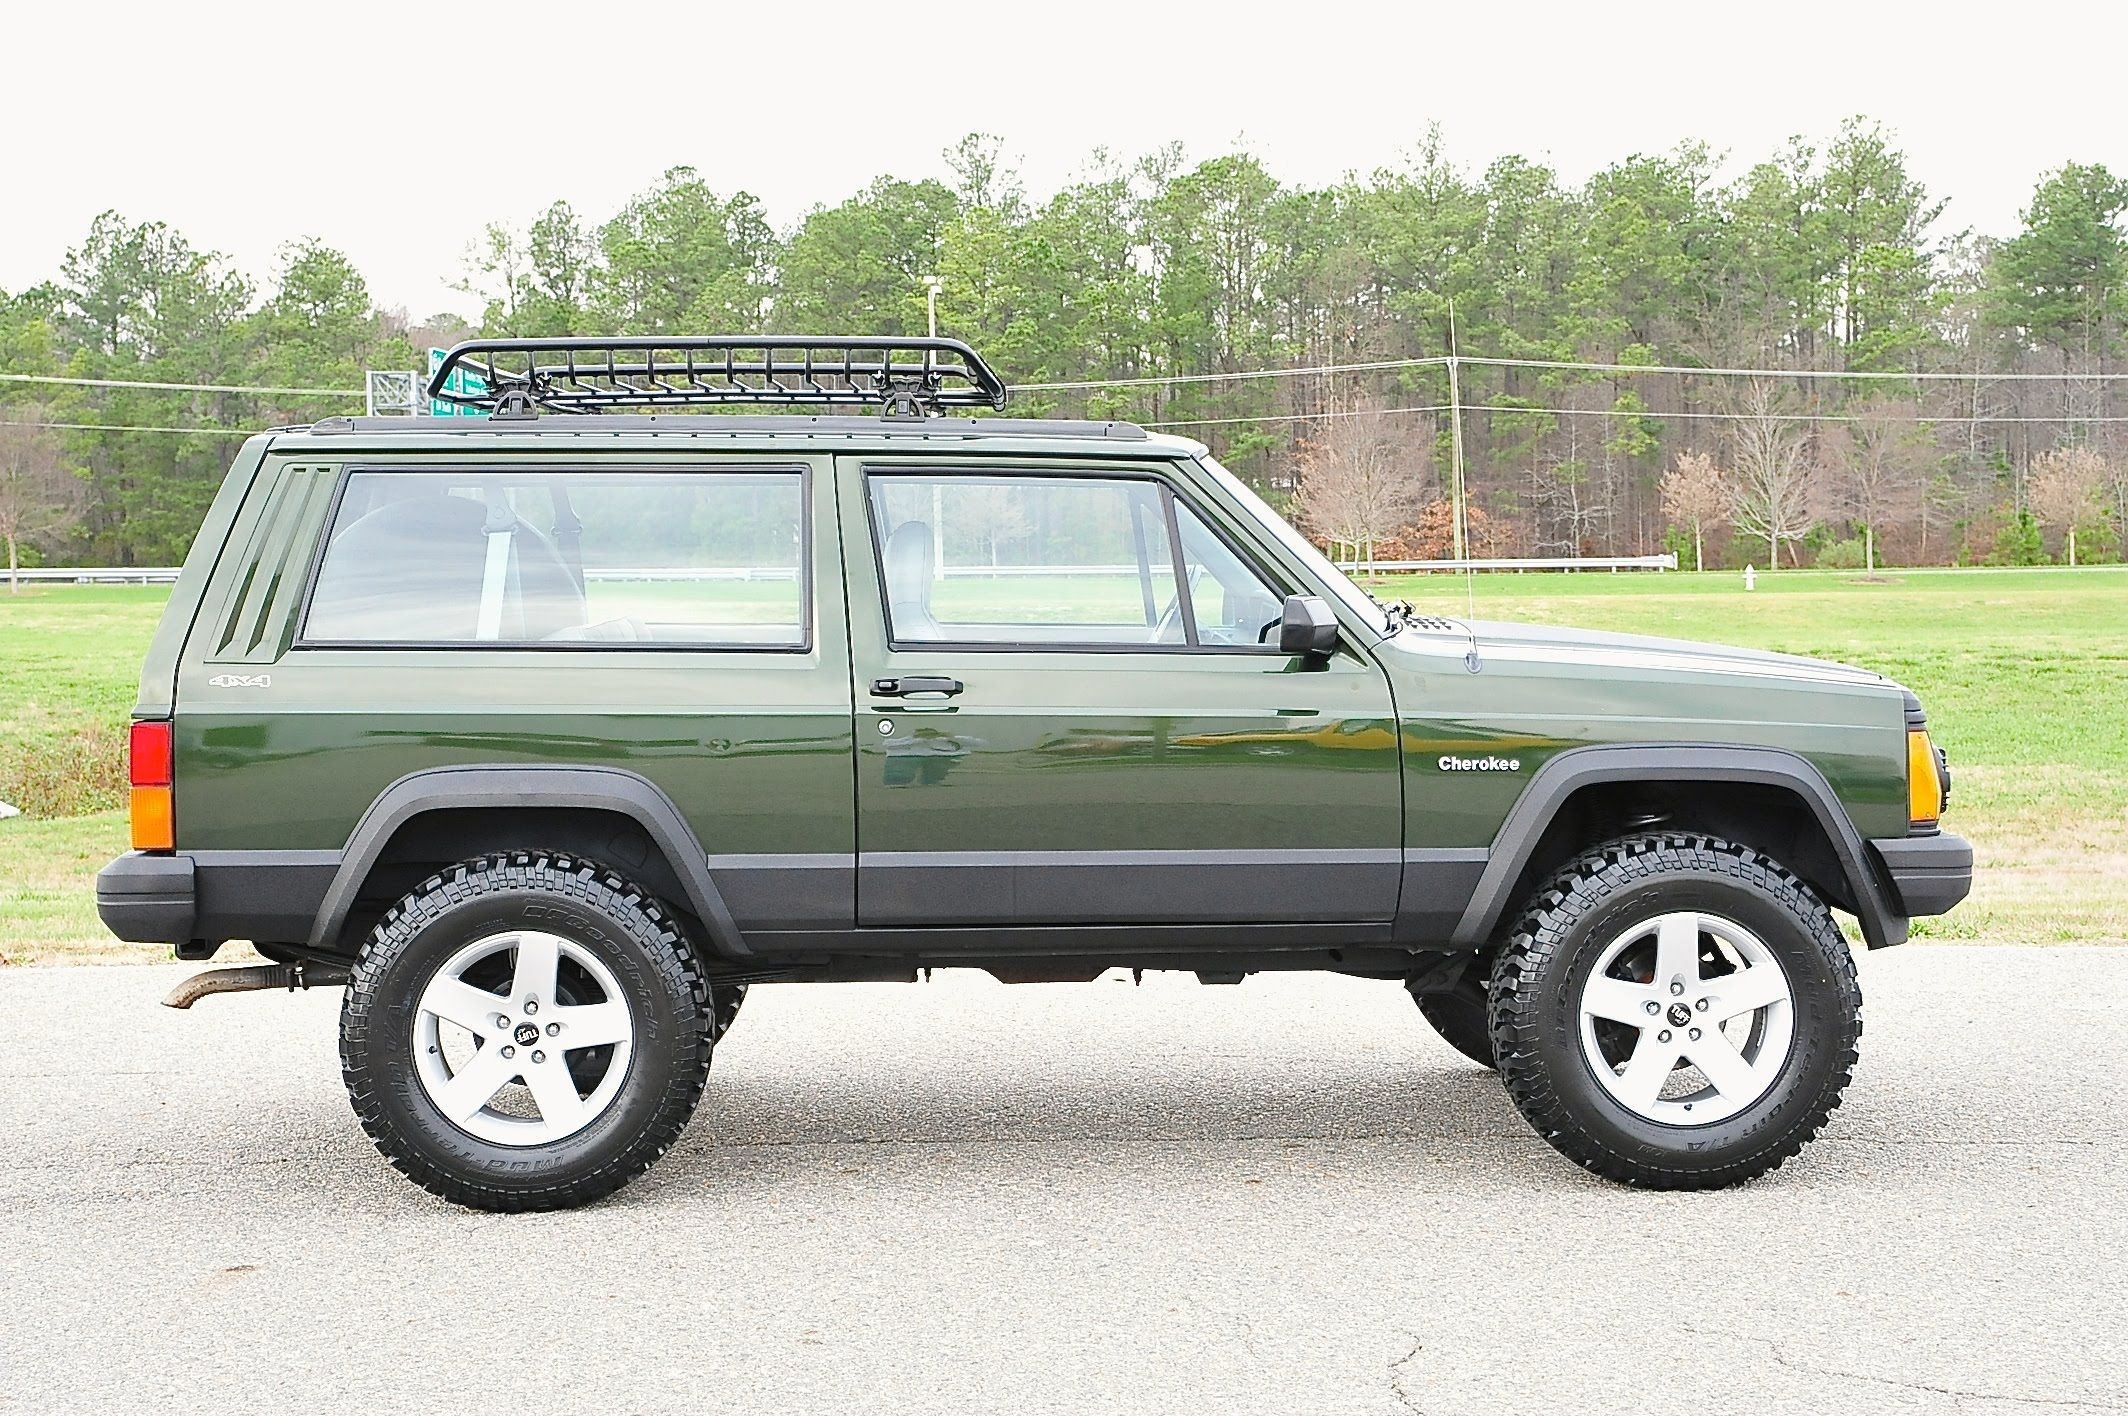 Awesome 2 Door Jeep Cherokee For Sale Jeep cherokee